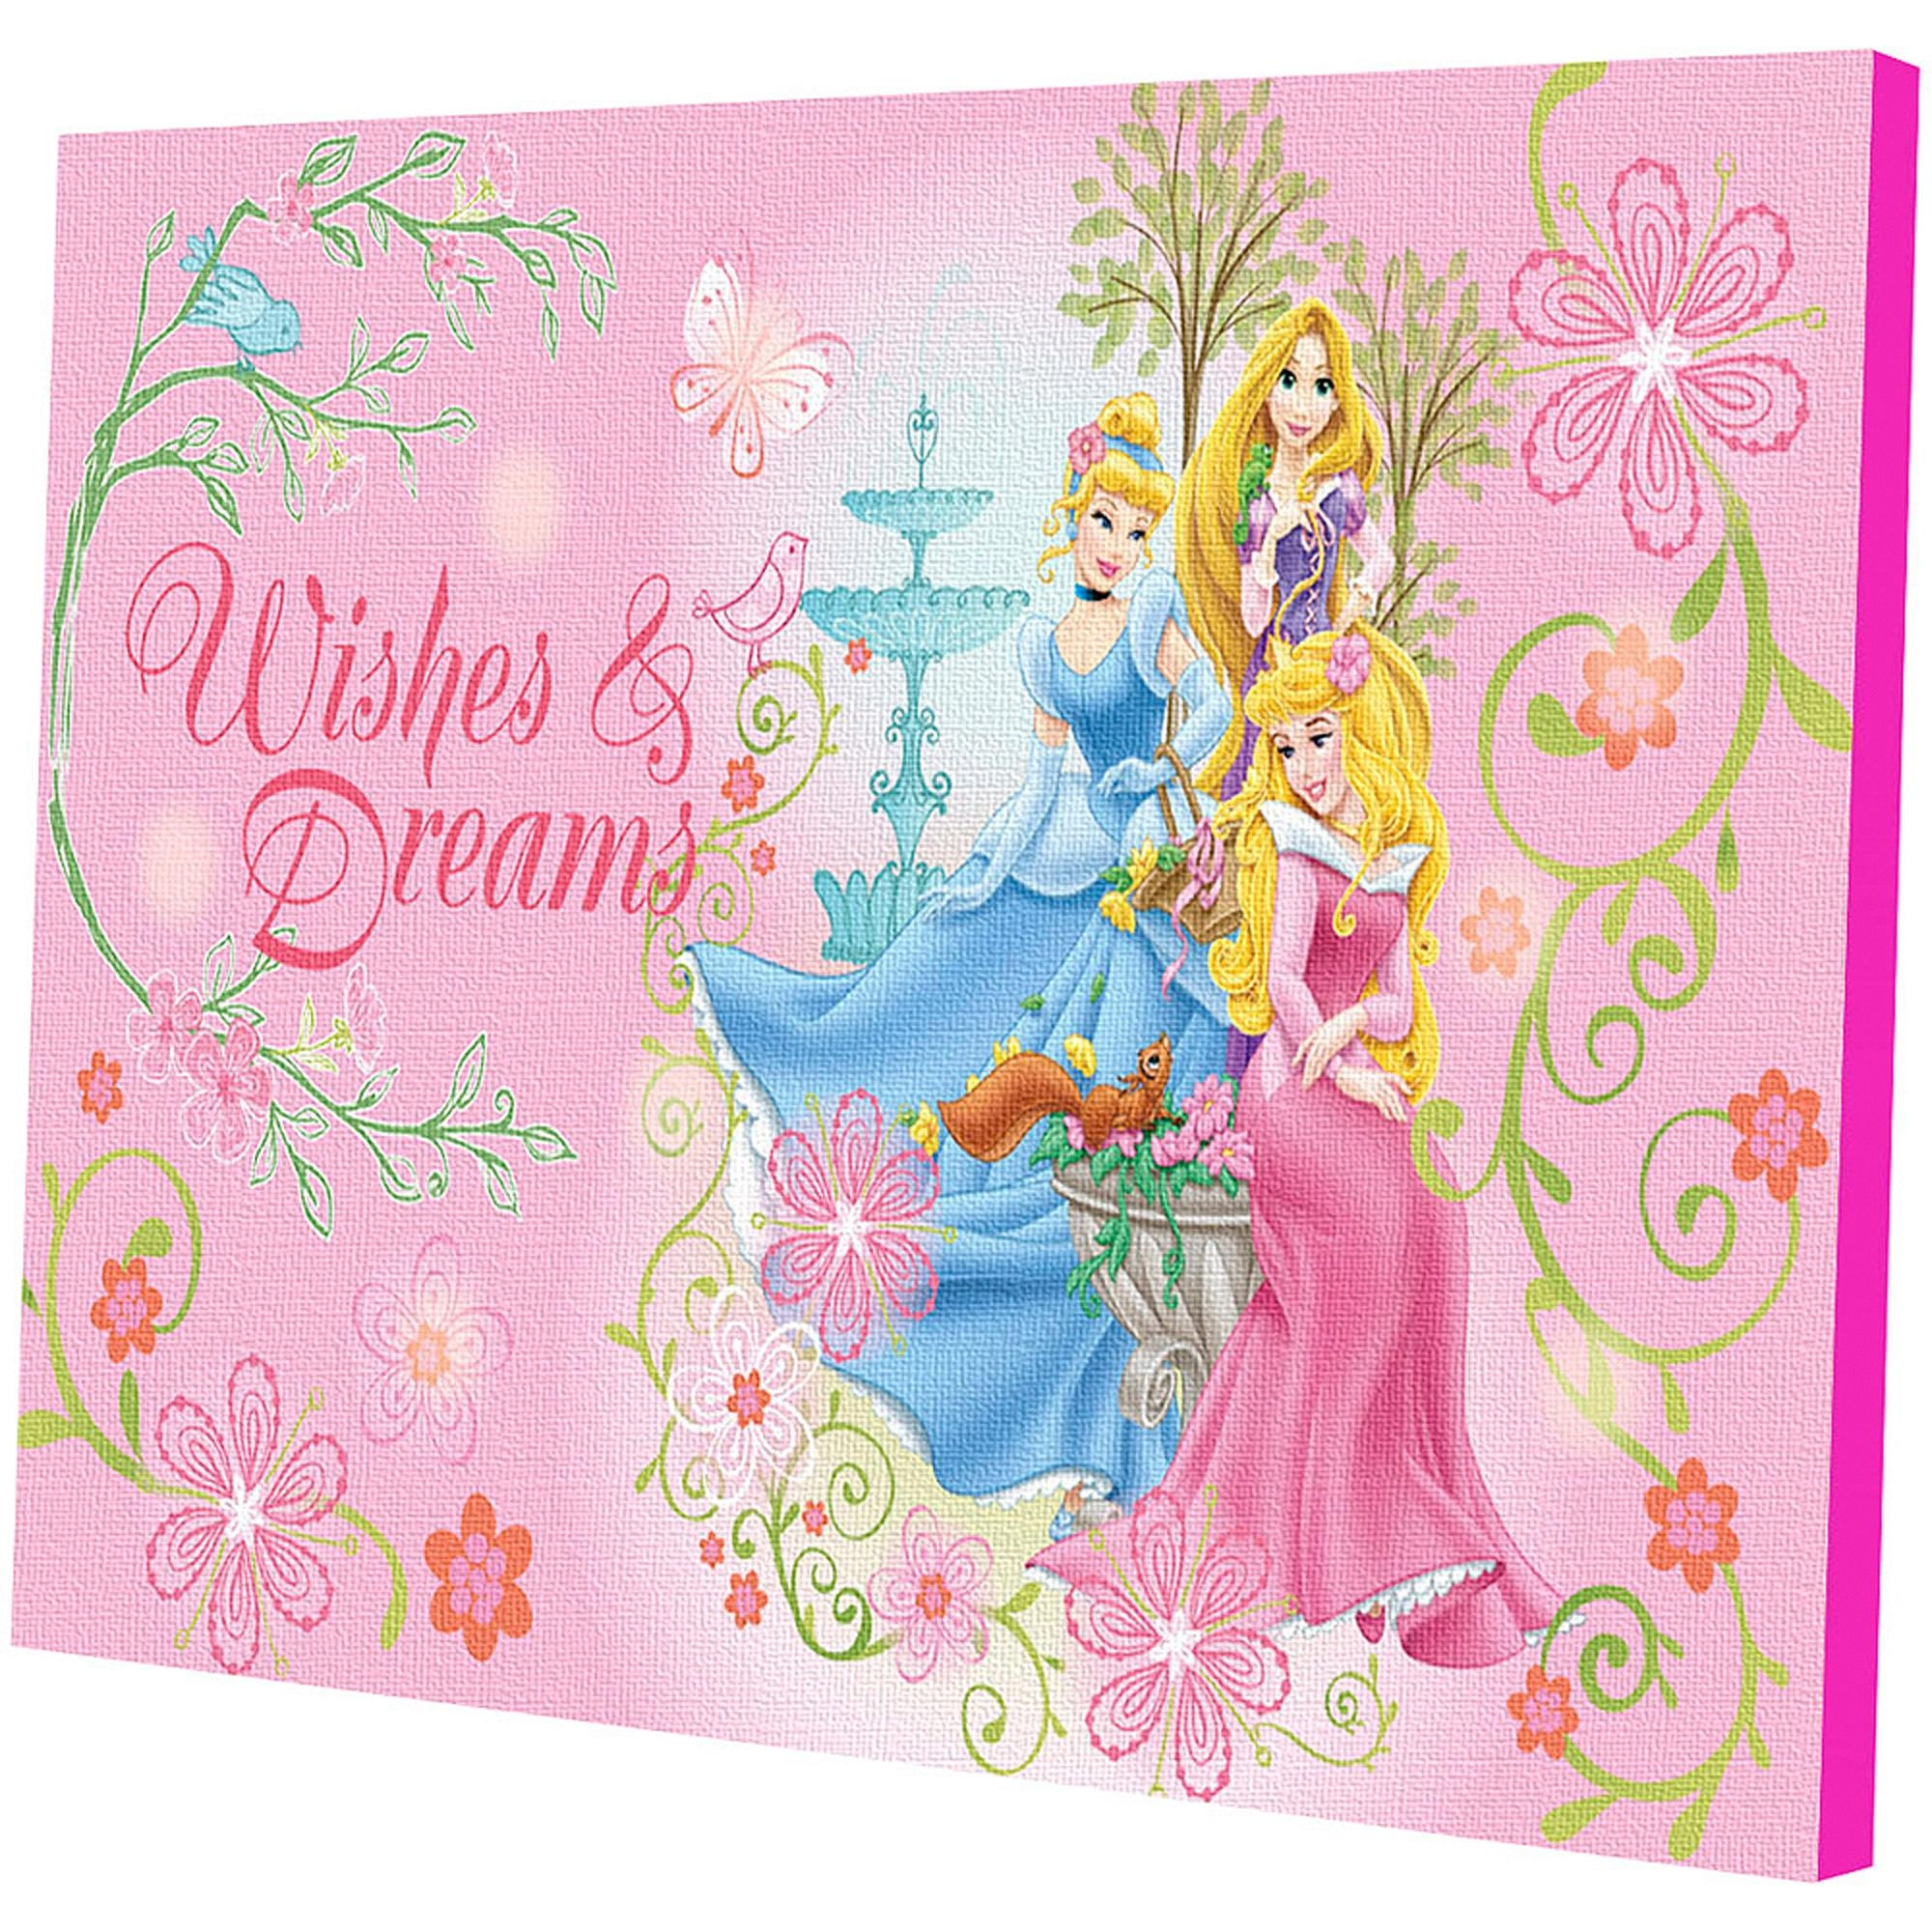 Disney Princess Led Light Up Canvas Wall Art – Walmart With Disney Princess Framed Wall Art (Image 10 of 20)